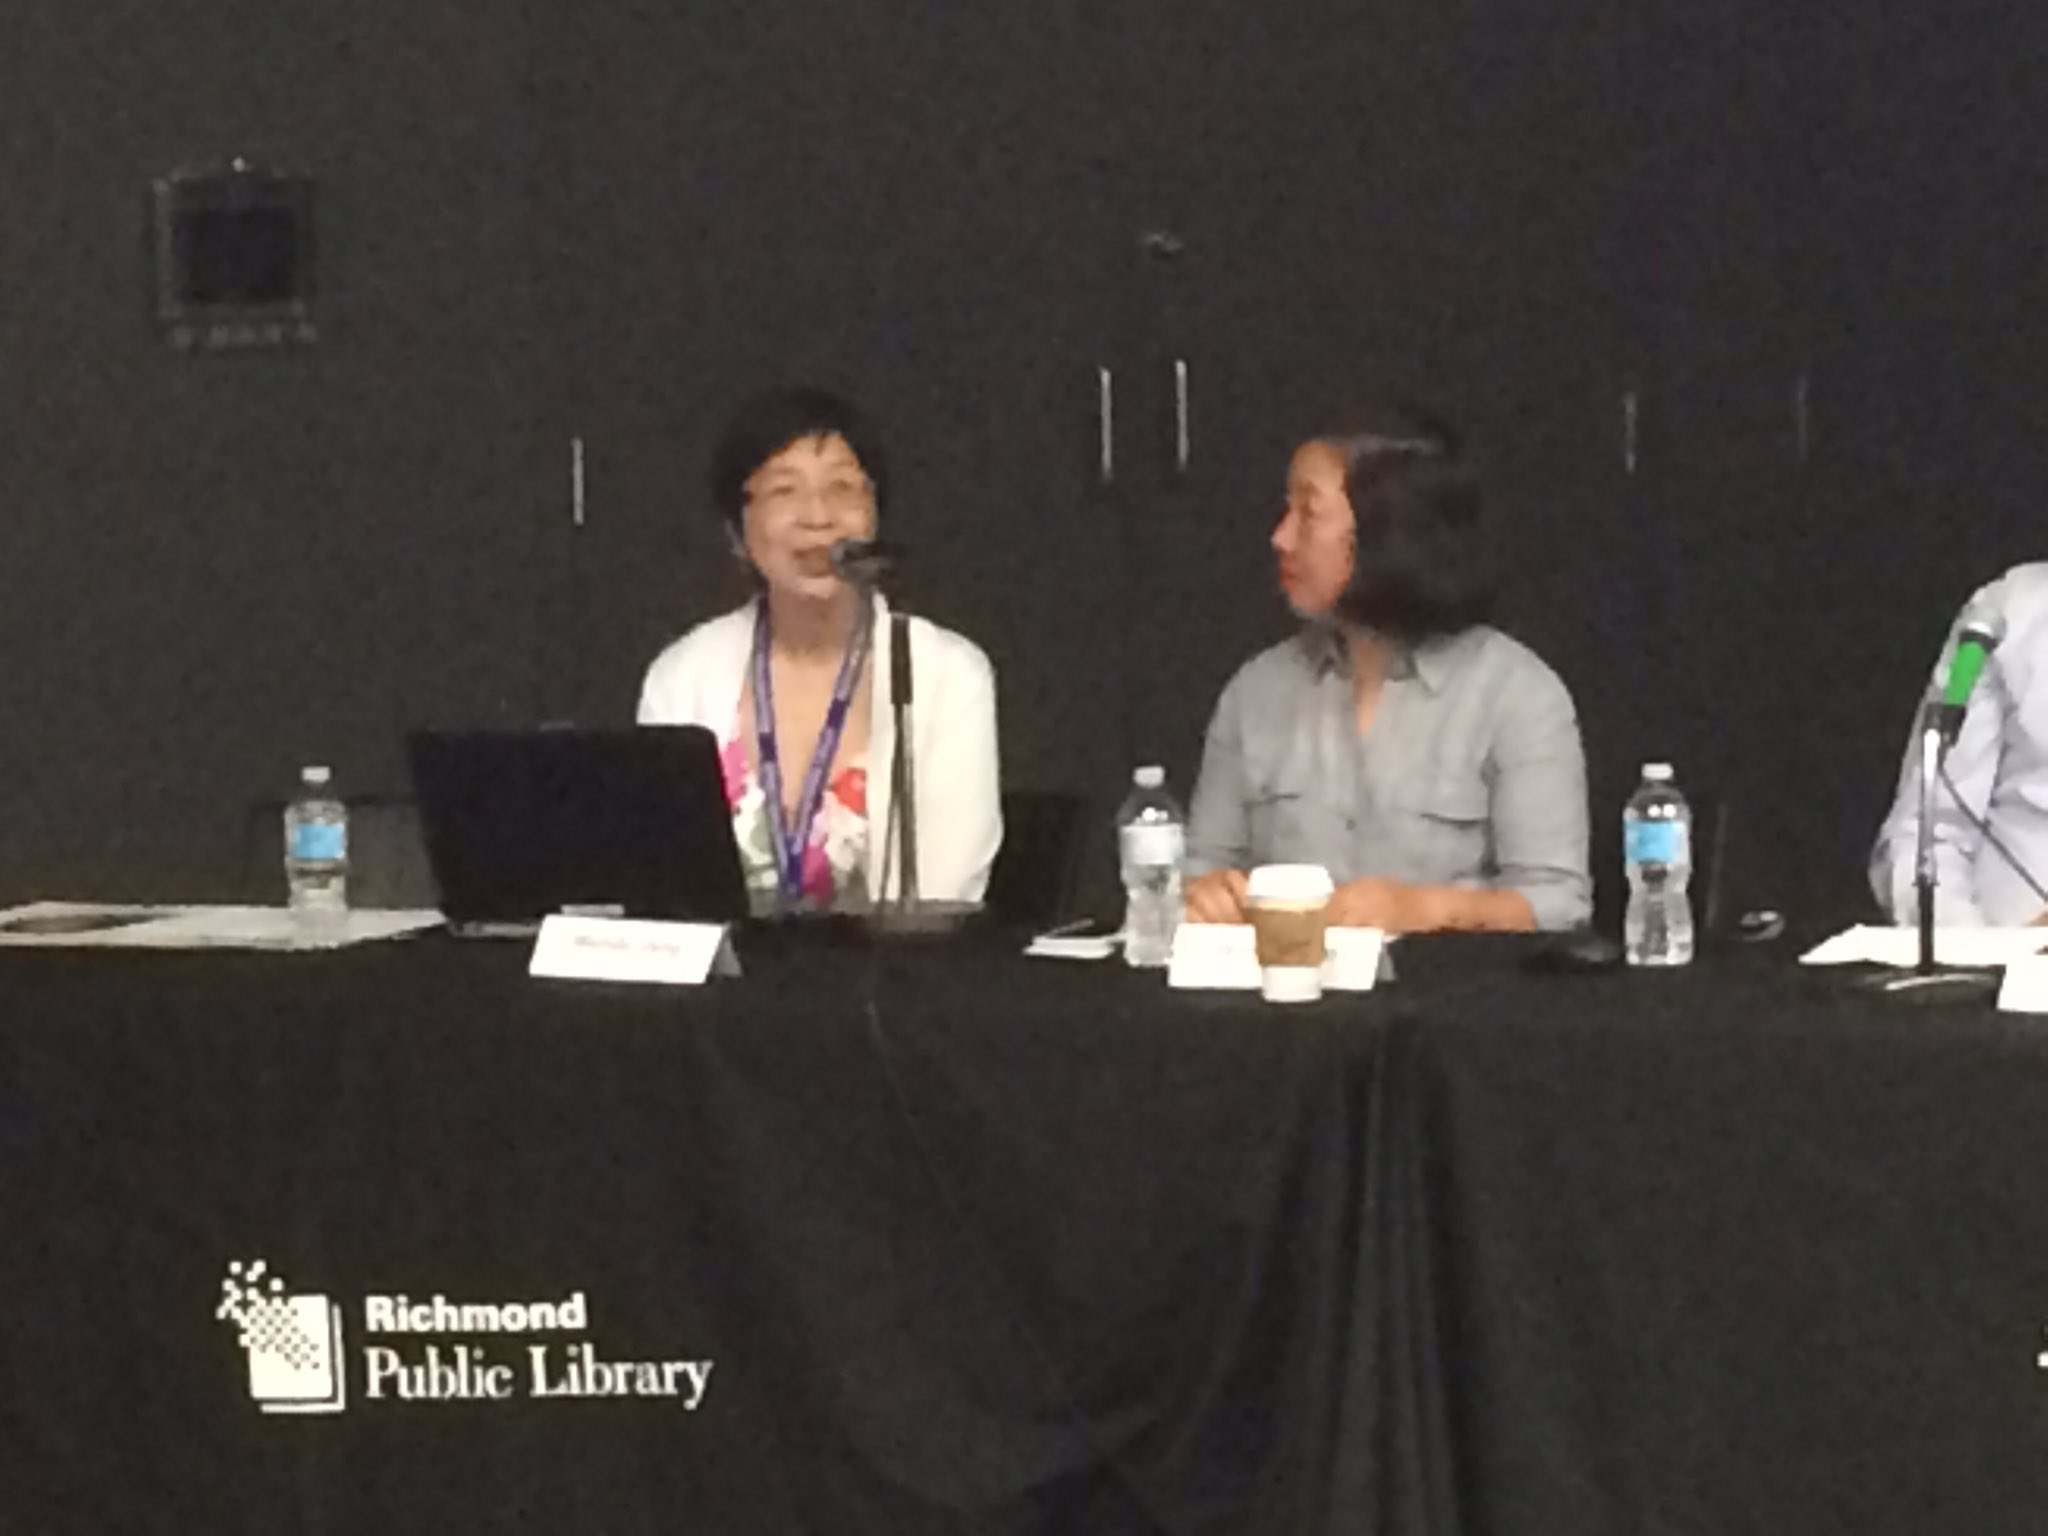 Wendy Jang on how to build a culturally inclusive @RPL_YourLibrary. Wendy and her team have done an amazing job! https://t.co/GU4GgfcNcE